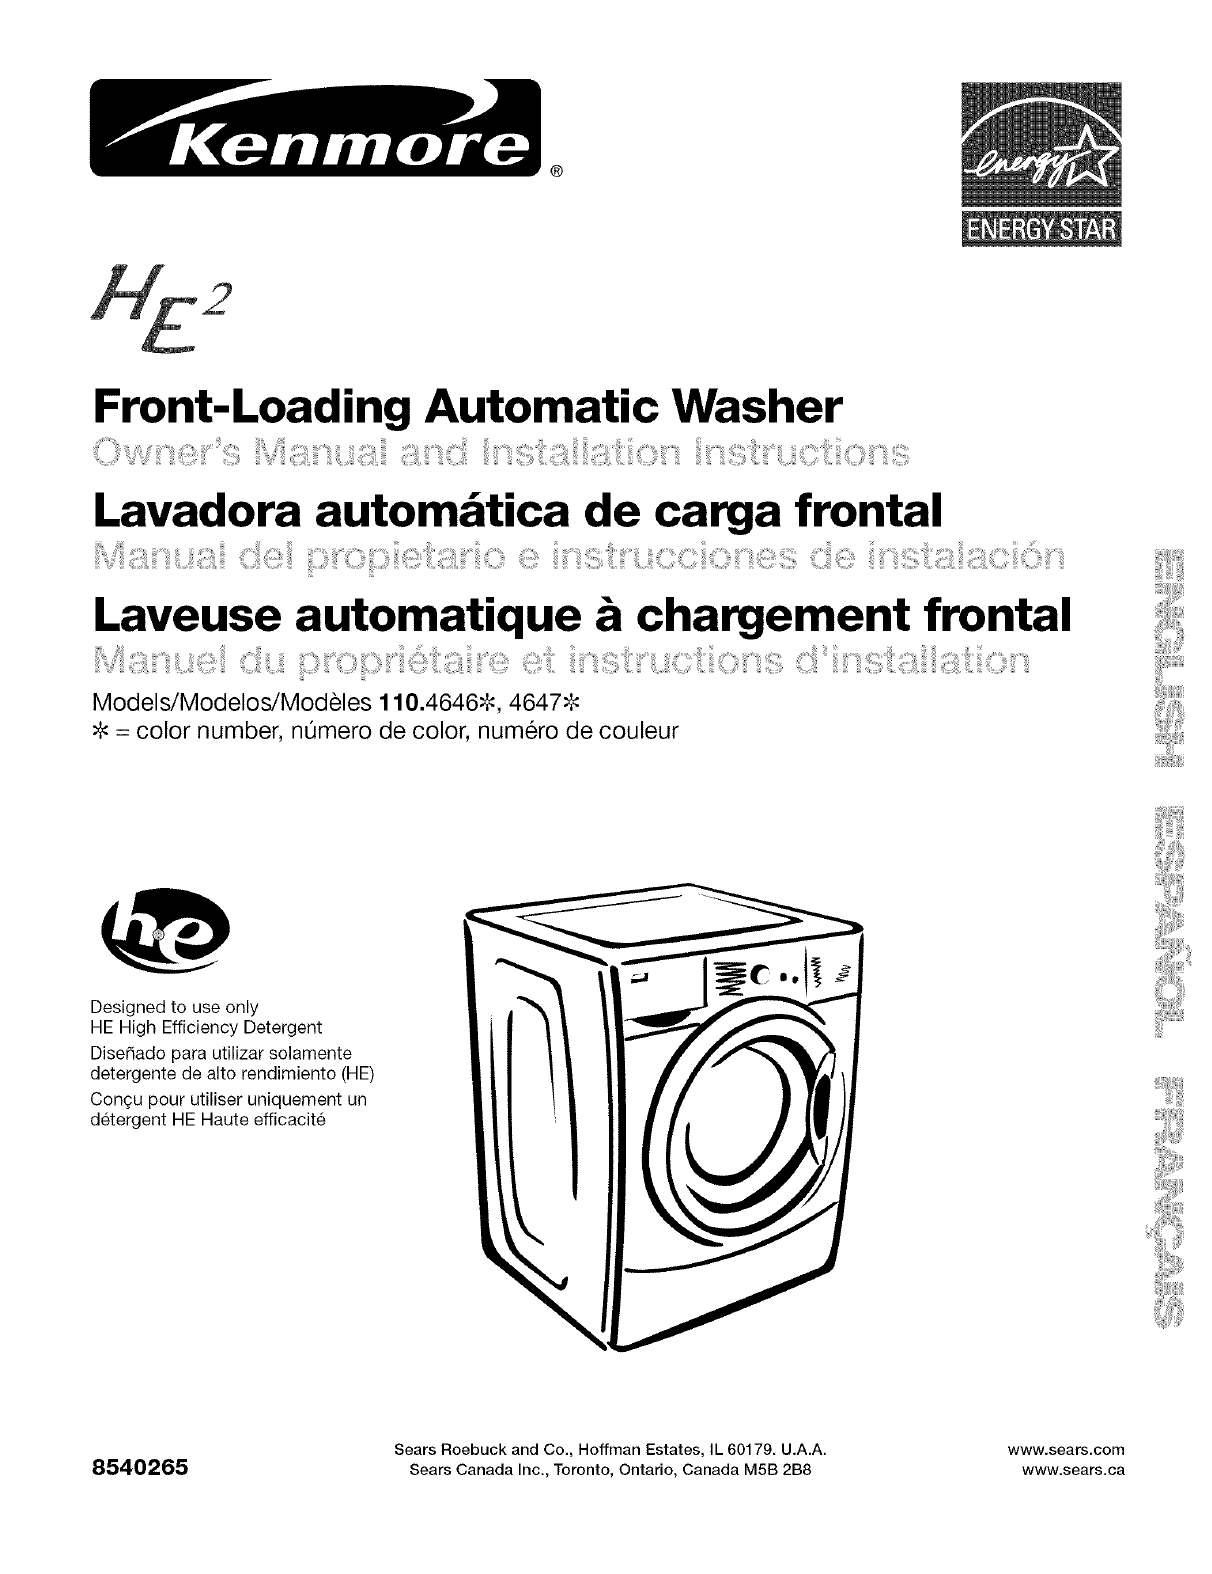 85a1800b 58a2 41cf ae61 017e09f15564 bg1?resize=840%2C1091 kenmore washer diagram periodic & diagrams science  at creativeand.co